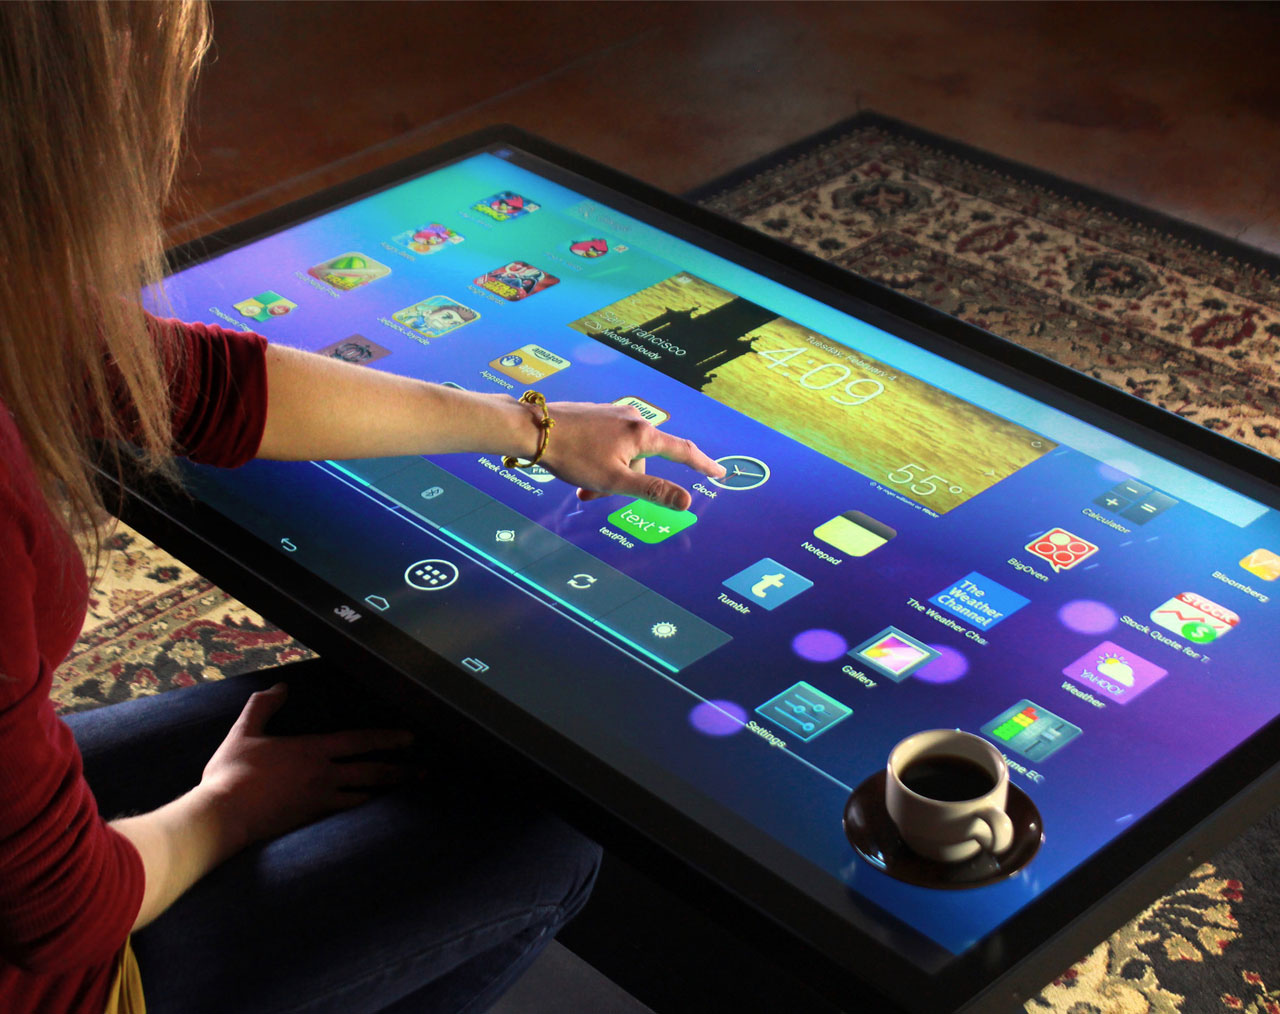 Image for the post: 'Ideum Platform 46 Multitouch Tables with 3M at SXSW Interactive'